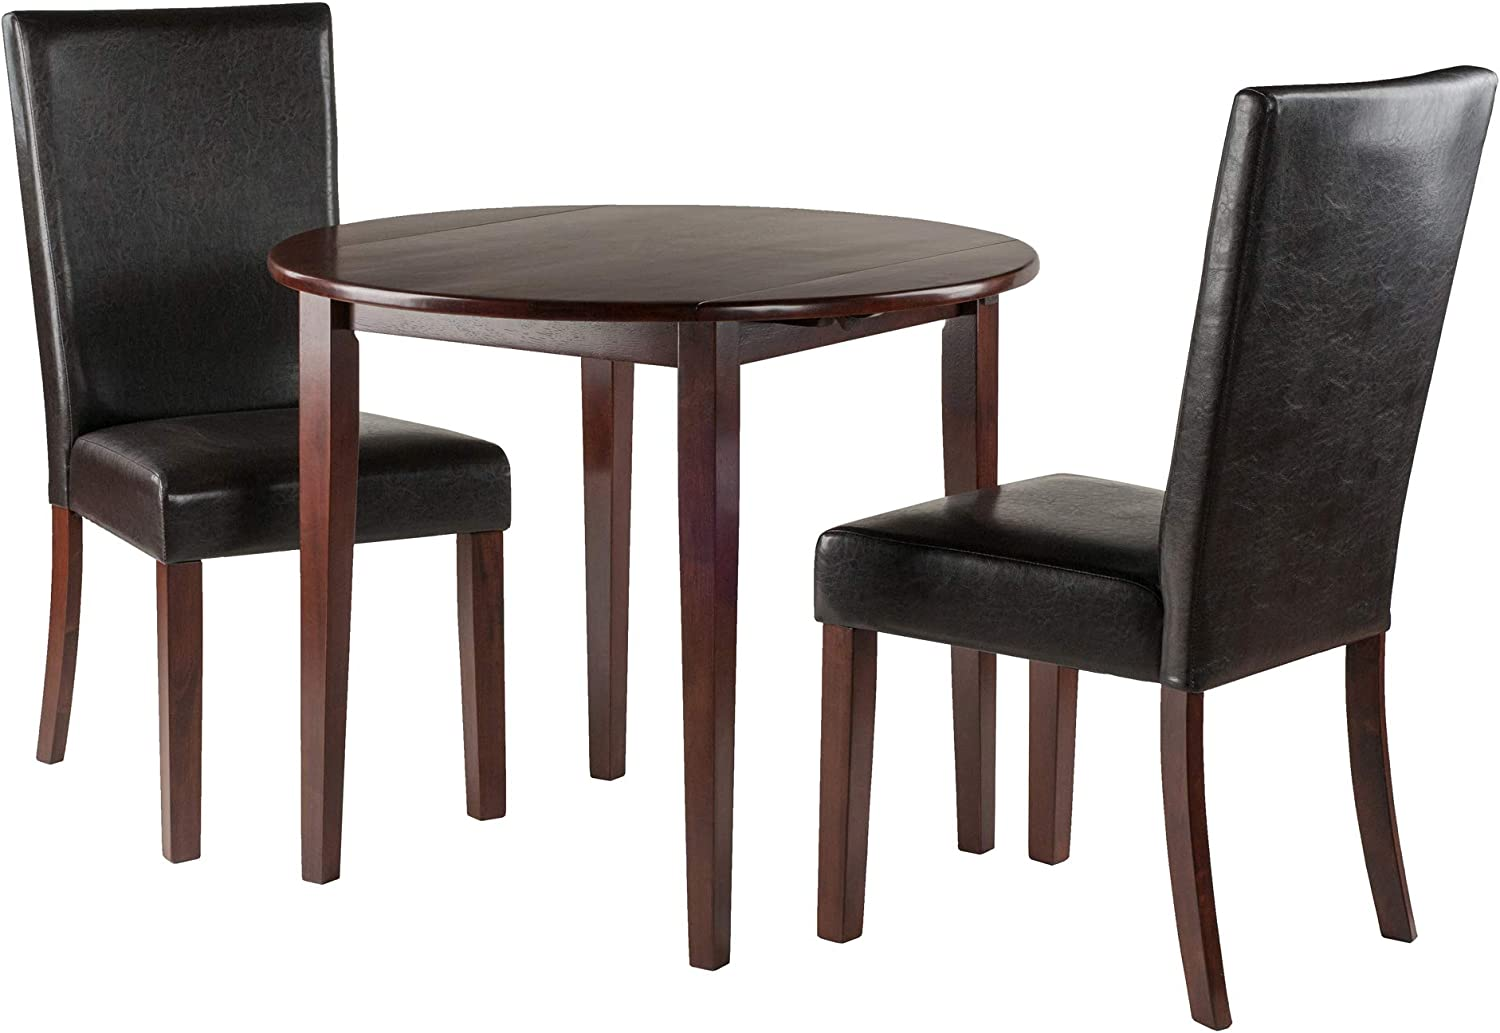 Winsome Wood Clayton 3-PC Set Drop Leaf Table with 2 Chairs Collection